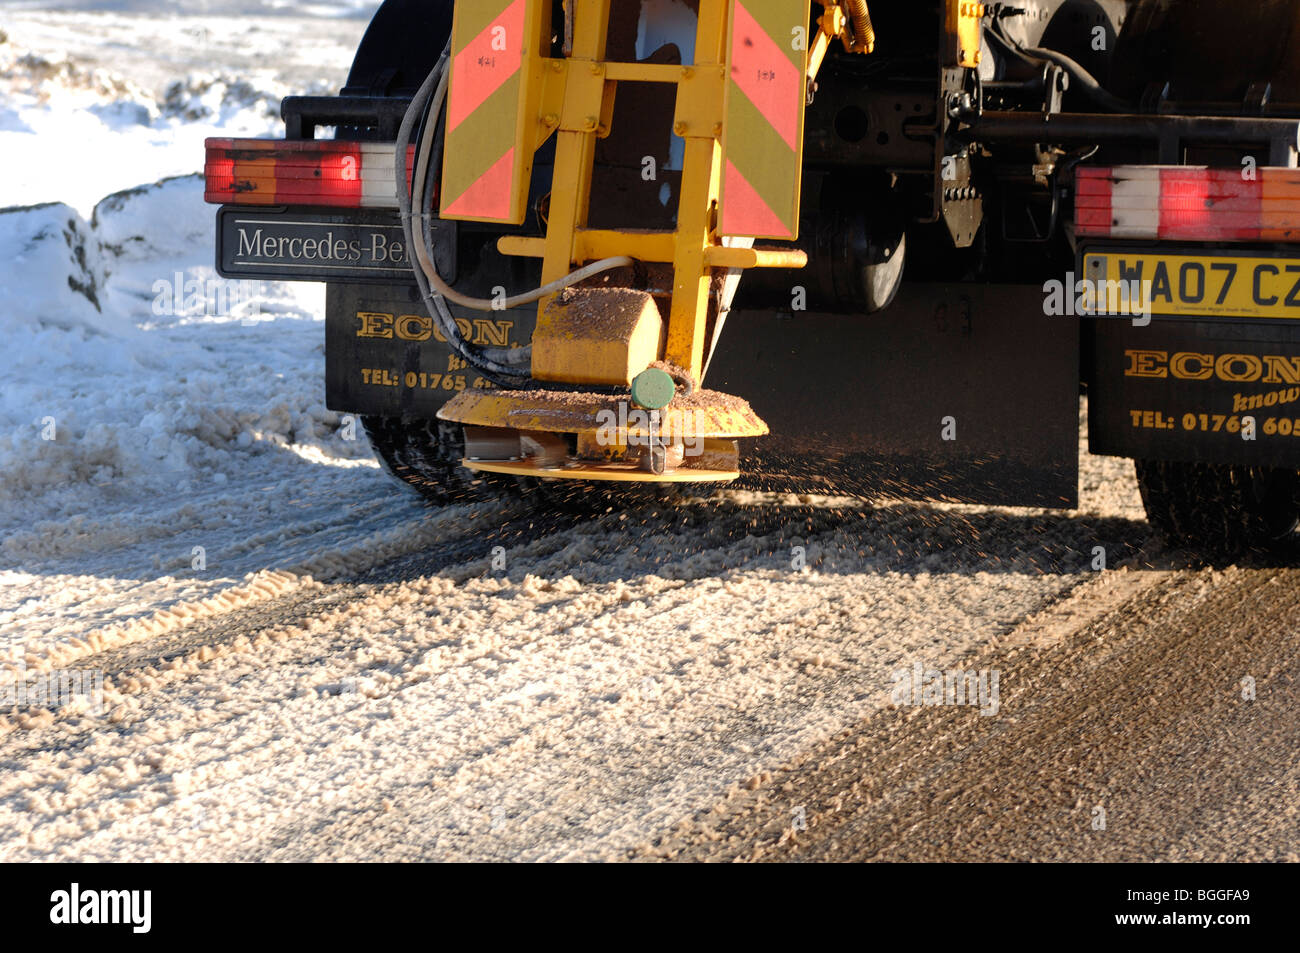 Gritting lorry spreading grit on Dartmoor Devon at Haytor - Stock Image